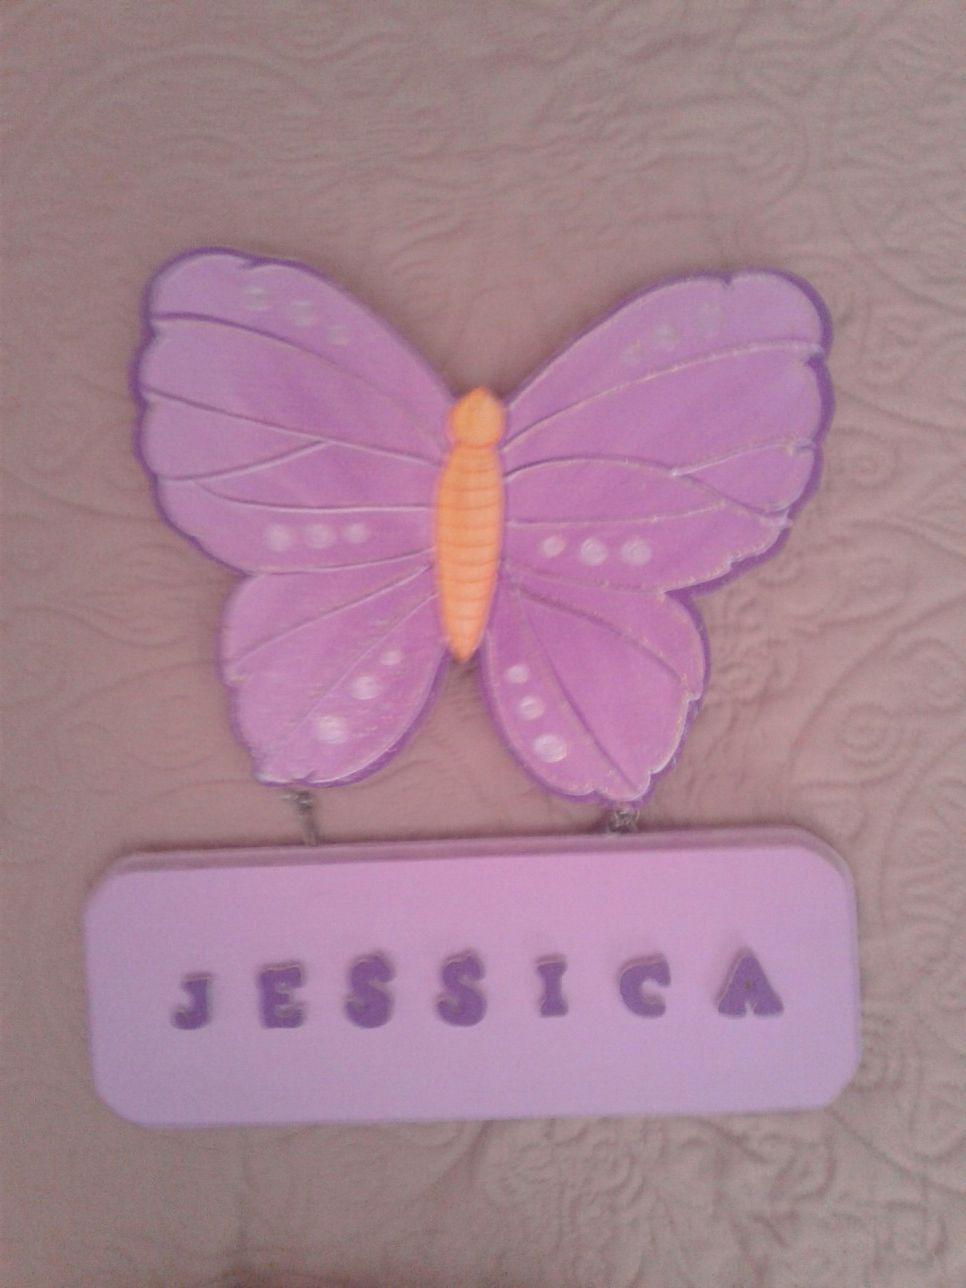 Butterfly decoration with a name